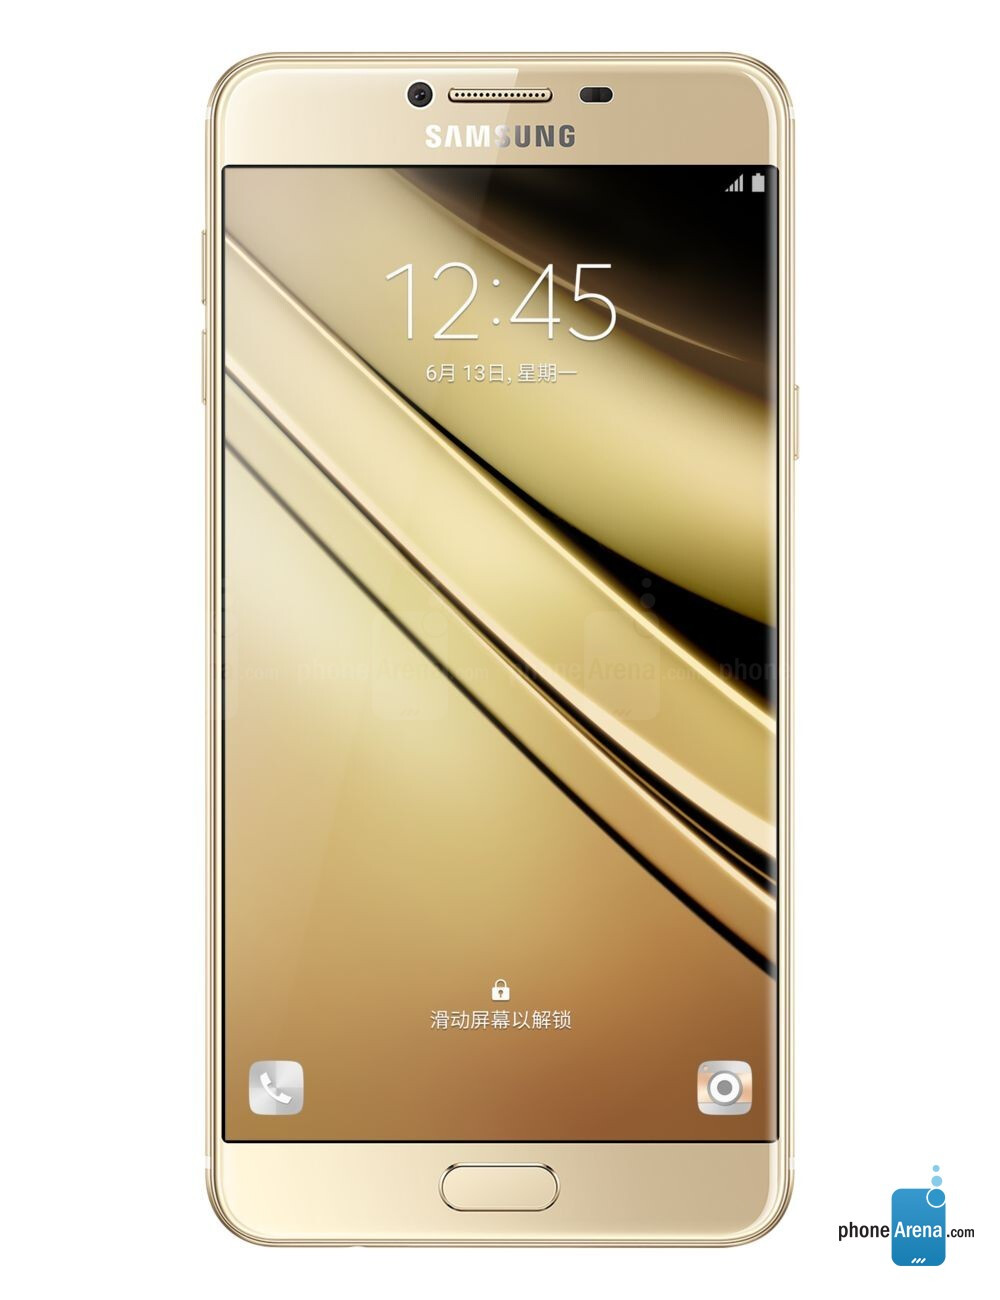 Samsung's Galaxy C7 Pro is a 5.7-inch phablet likely to be ...